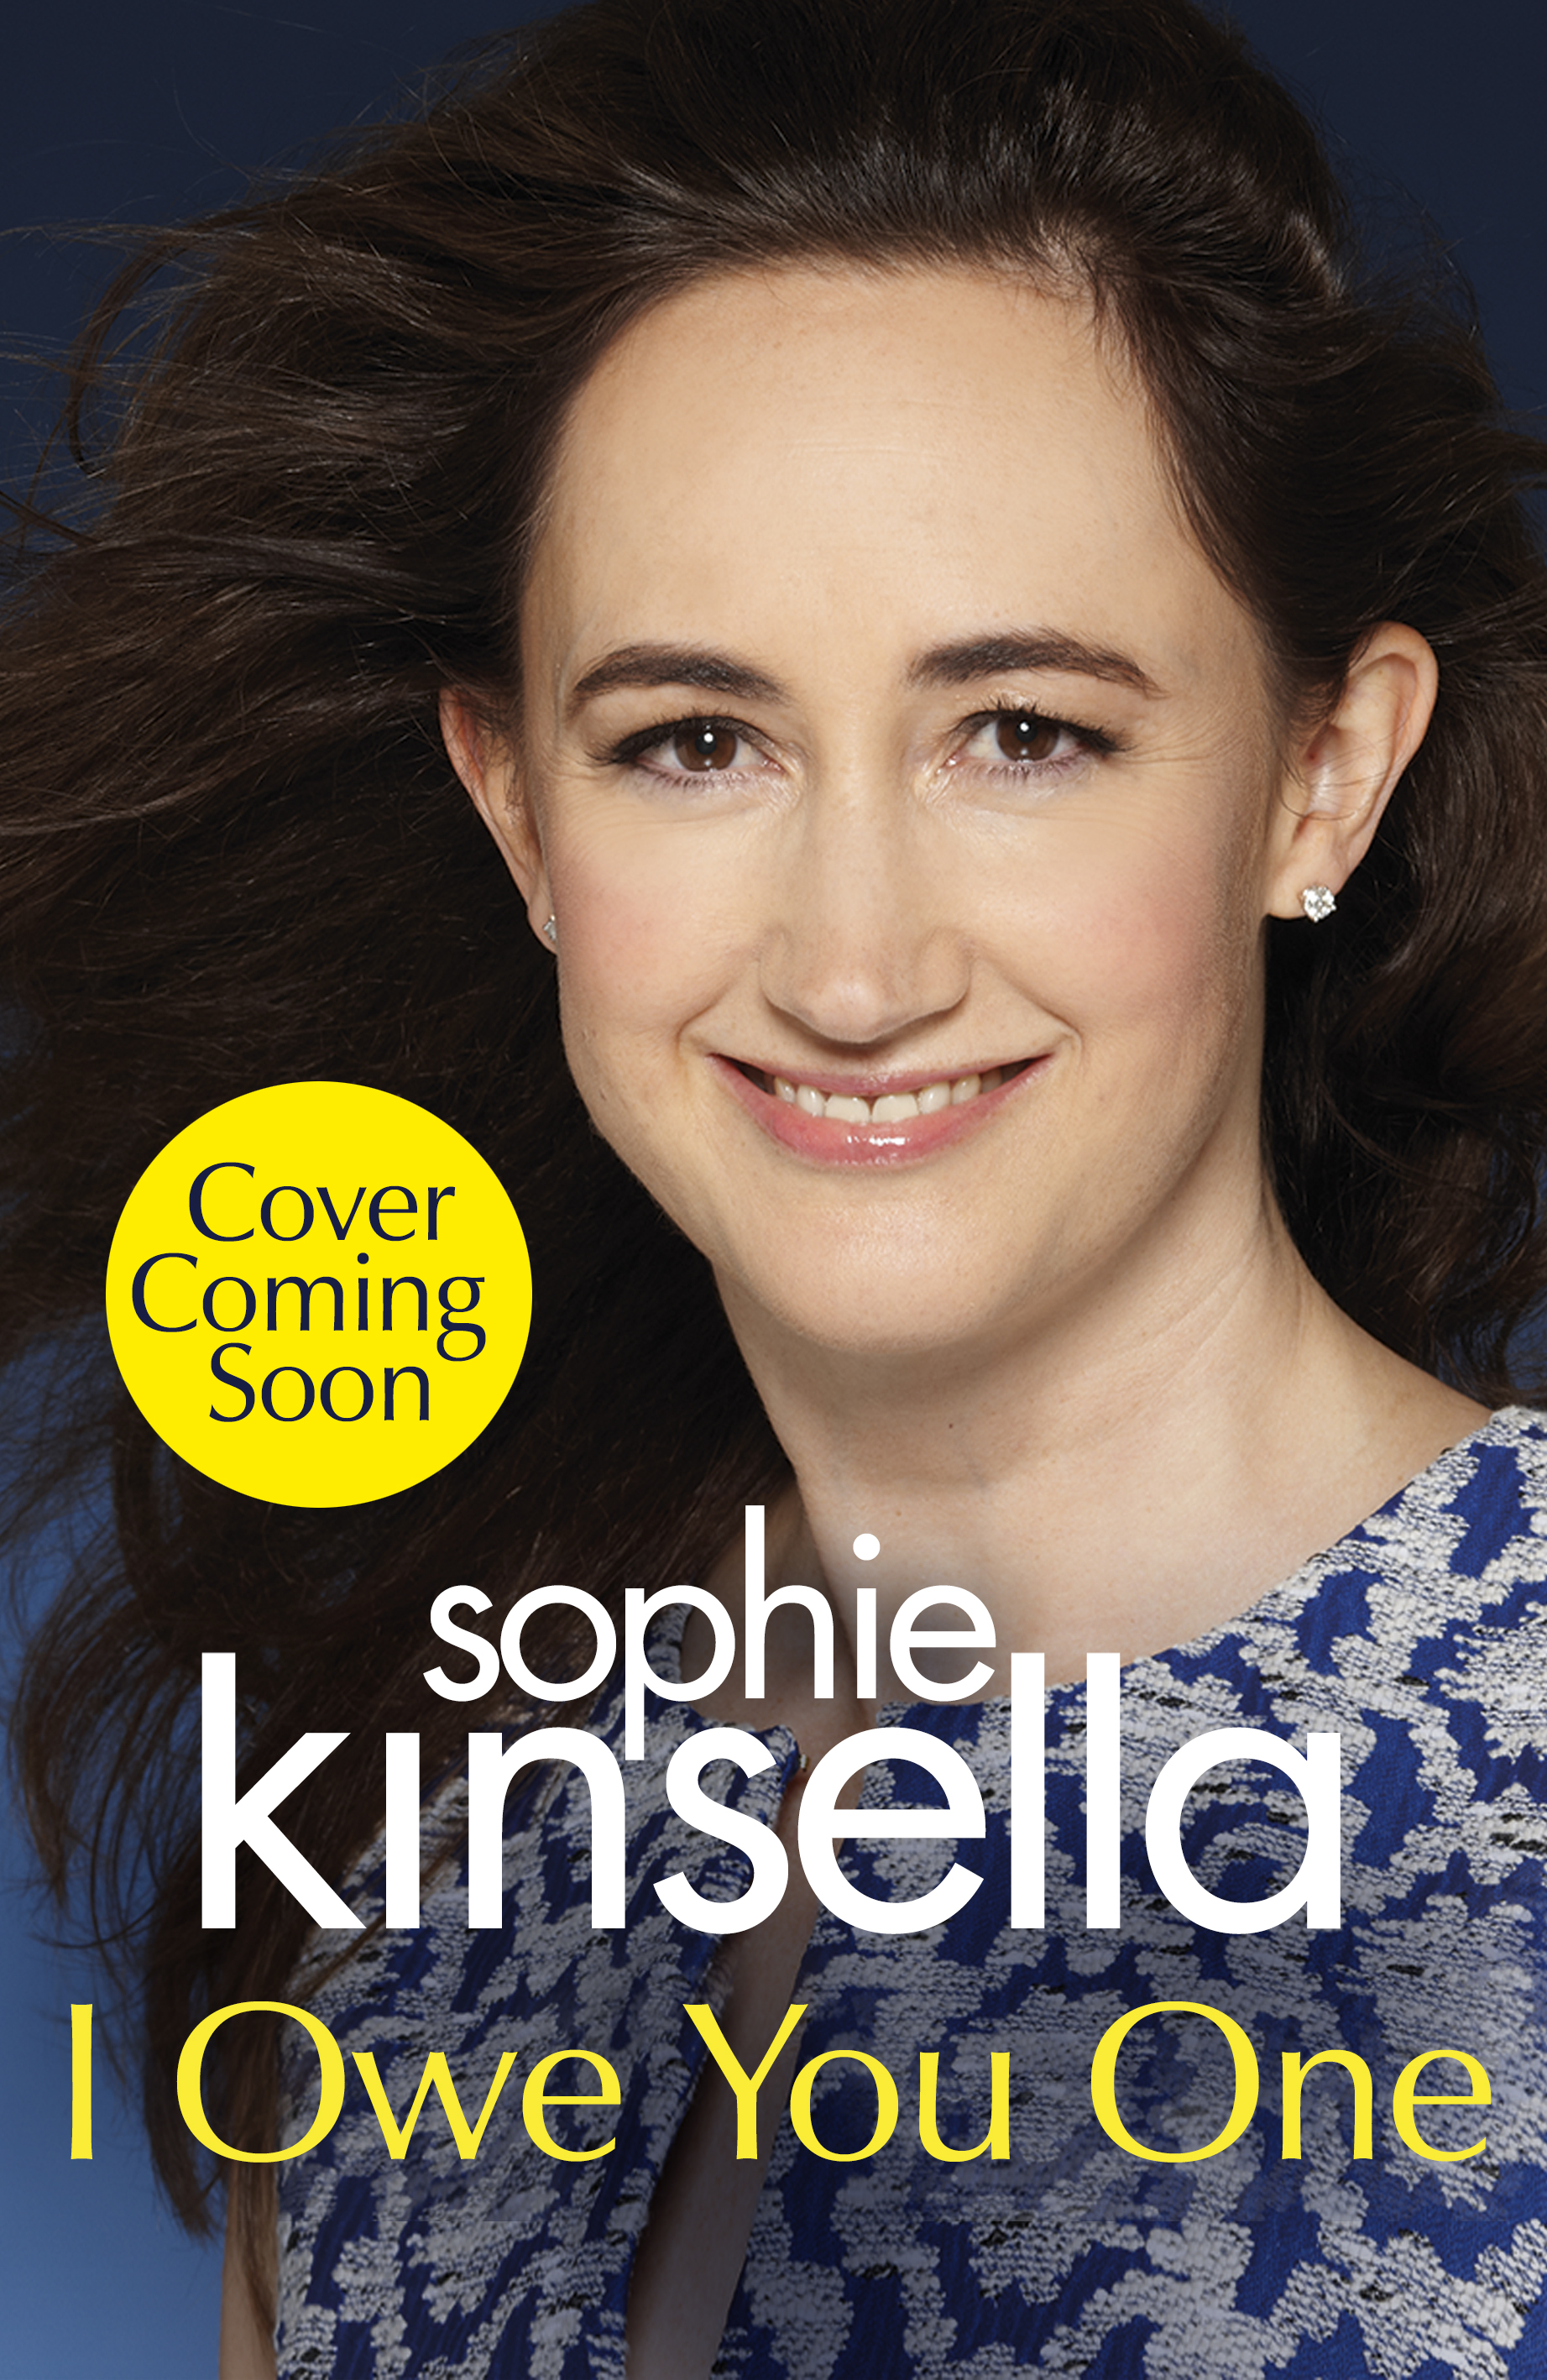 sophie kinsella i owe you one pdf download